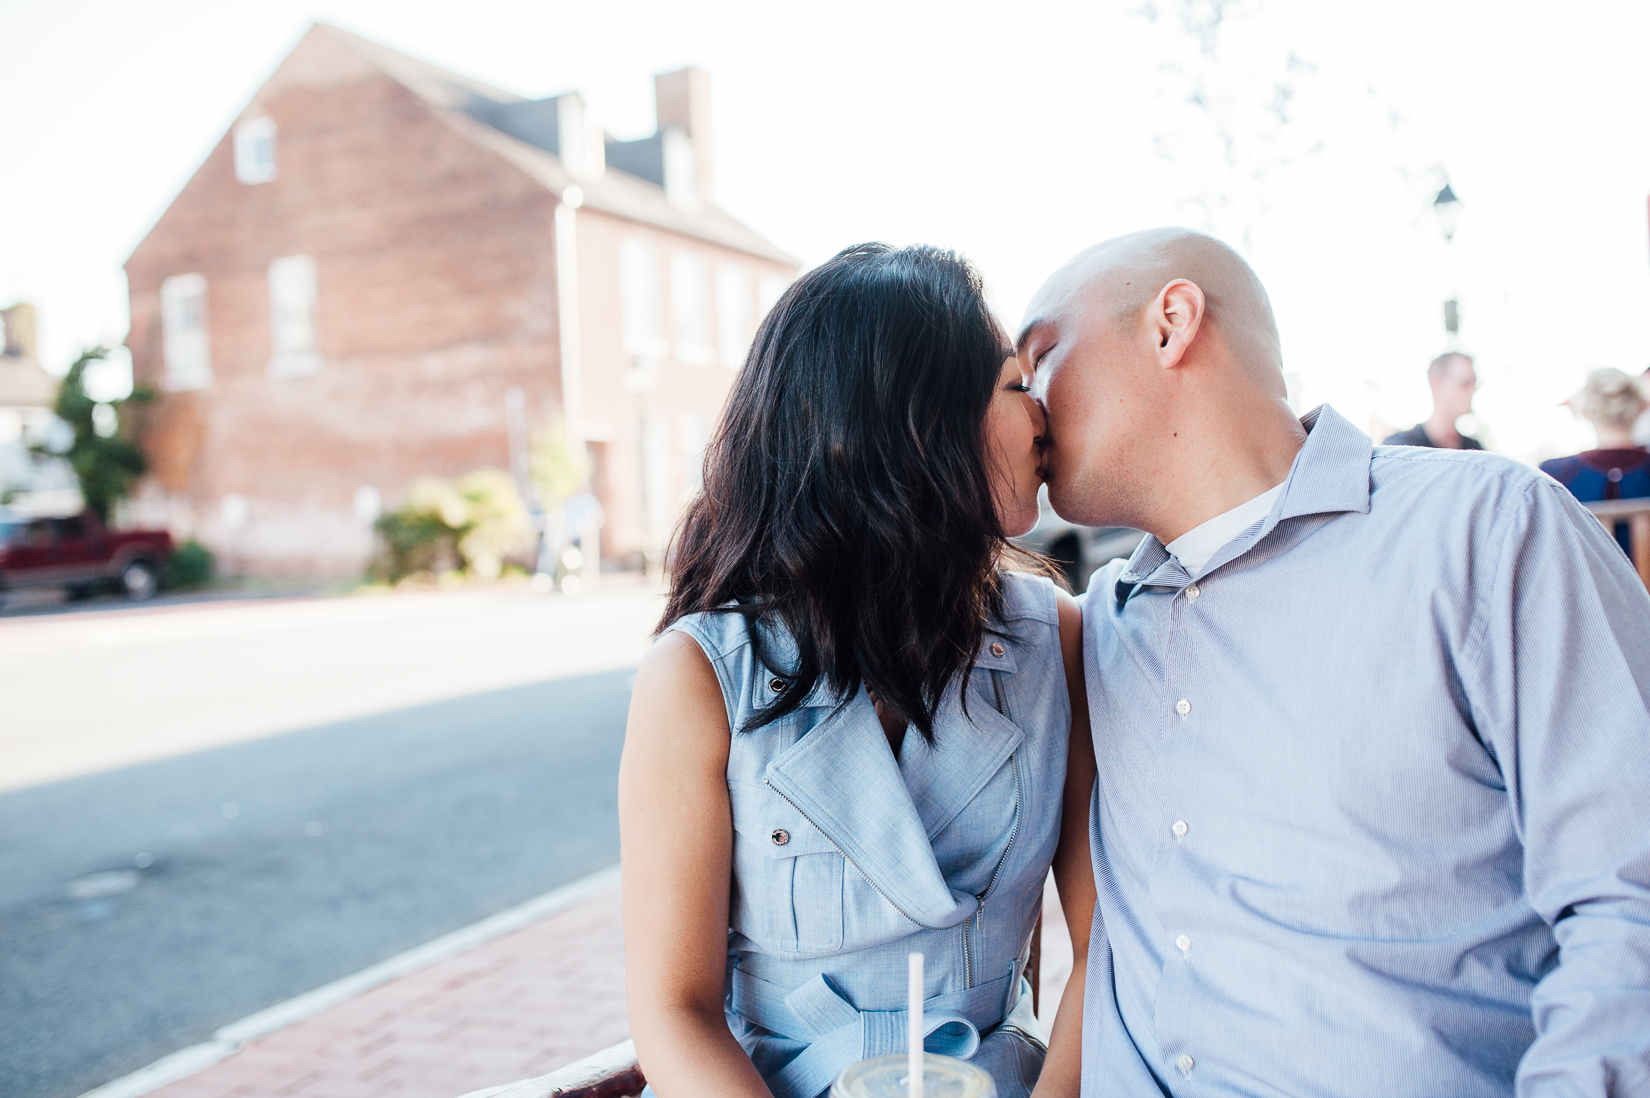 engagement_downtown_fredericksburg_virginiaweddingphotographer_youseephotography_HelenPaul (15).jpg